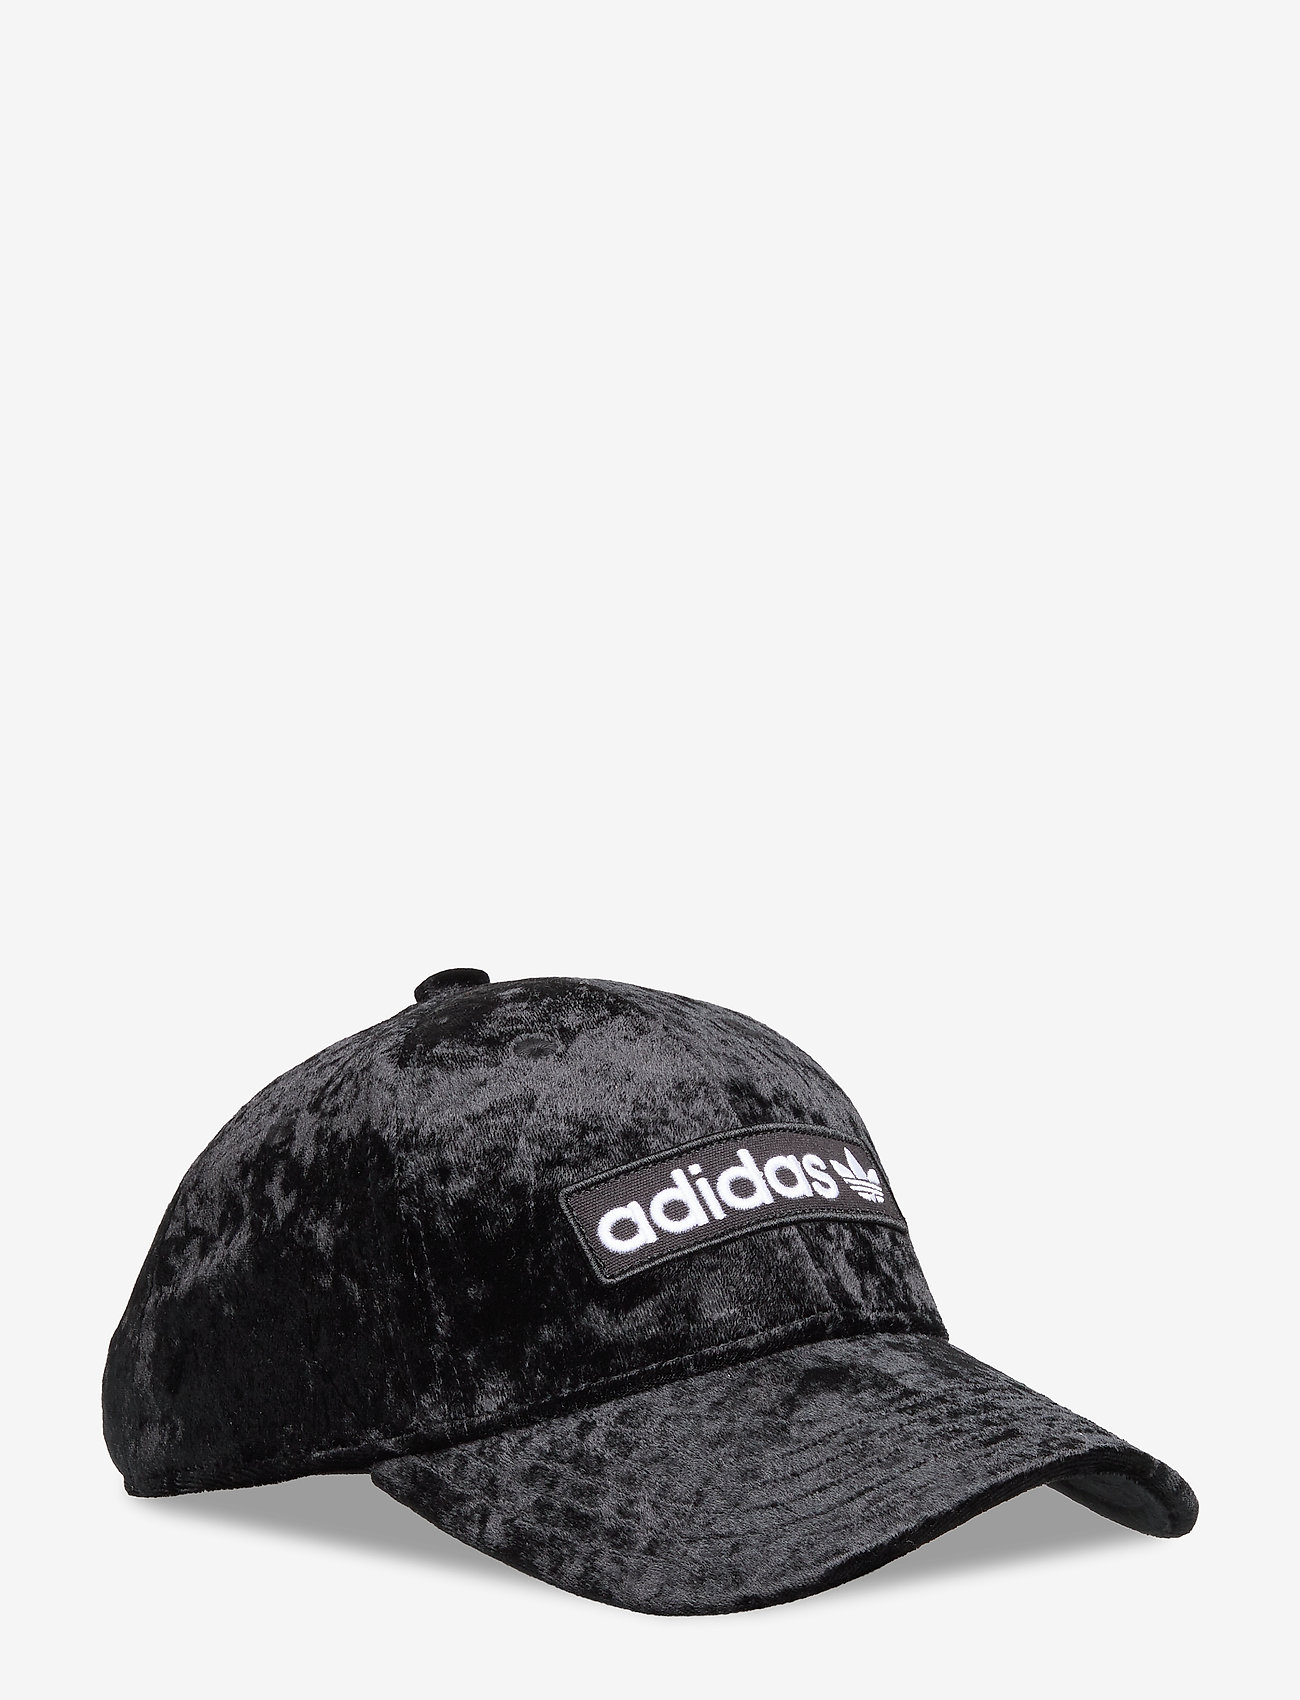 adidas Originals - BASEBALL CAP - caps - black/white